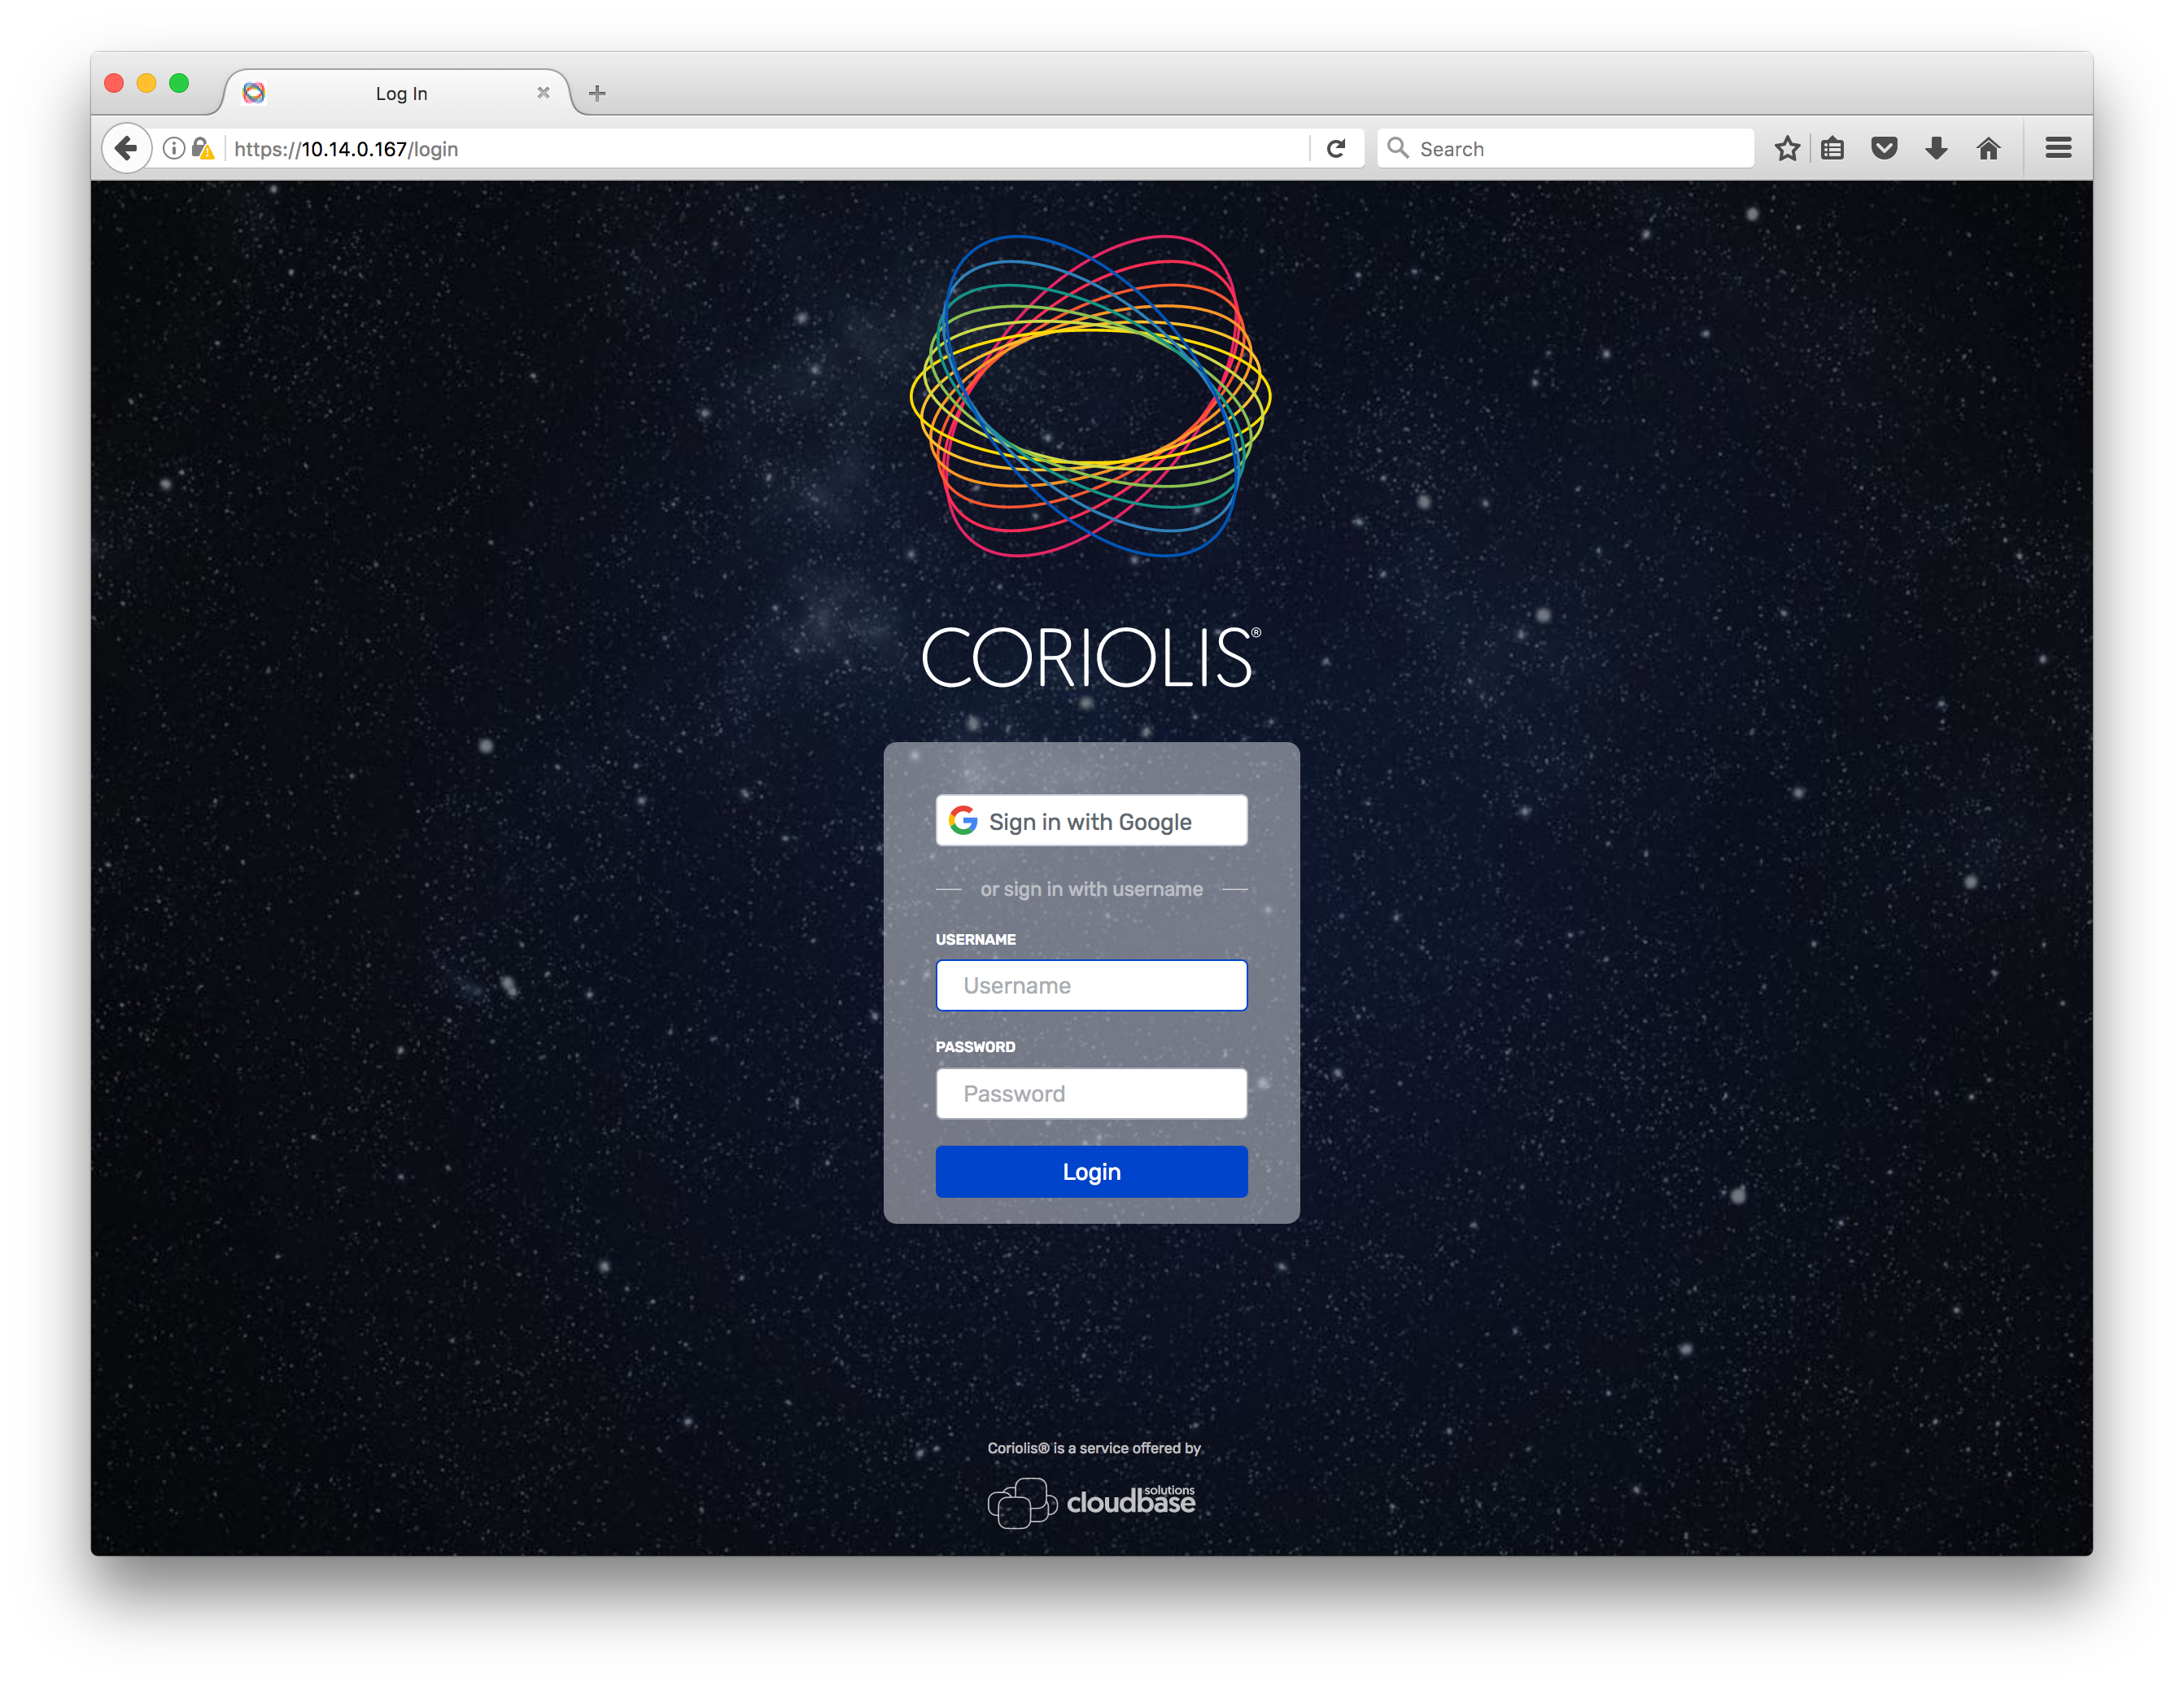 Coriolis - How to migrate VMs from VMware to OpenStack using